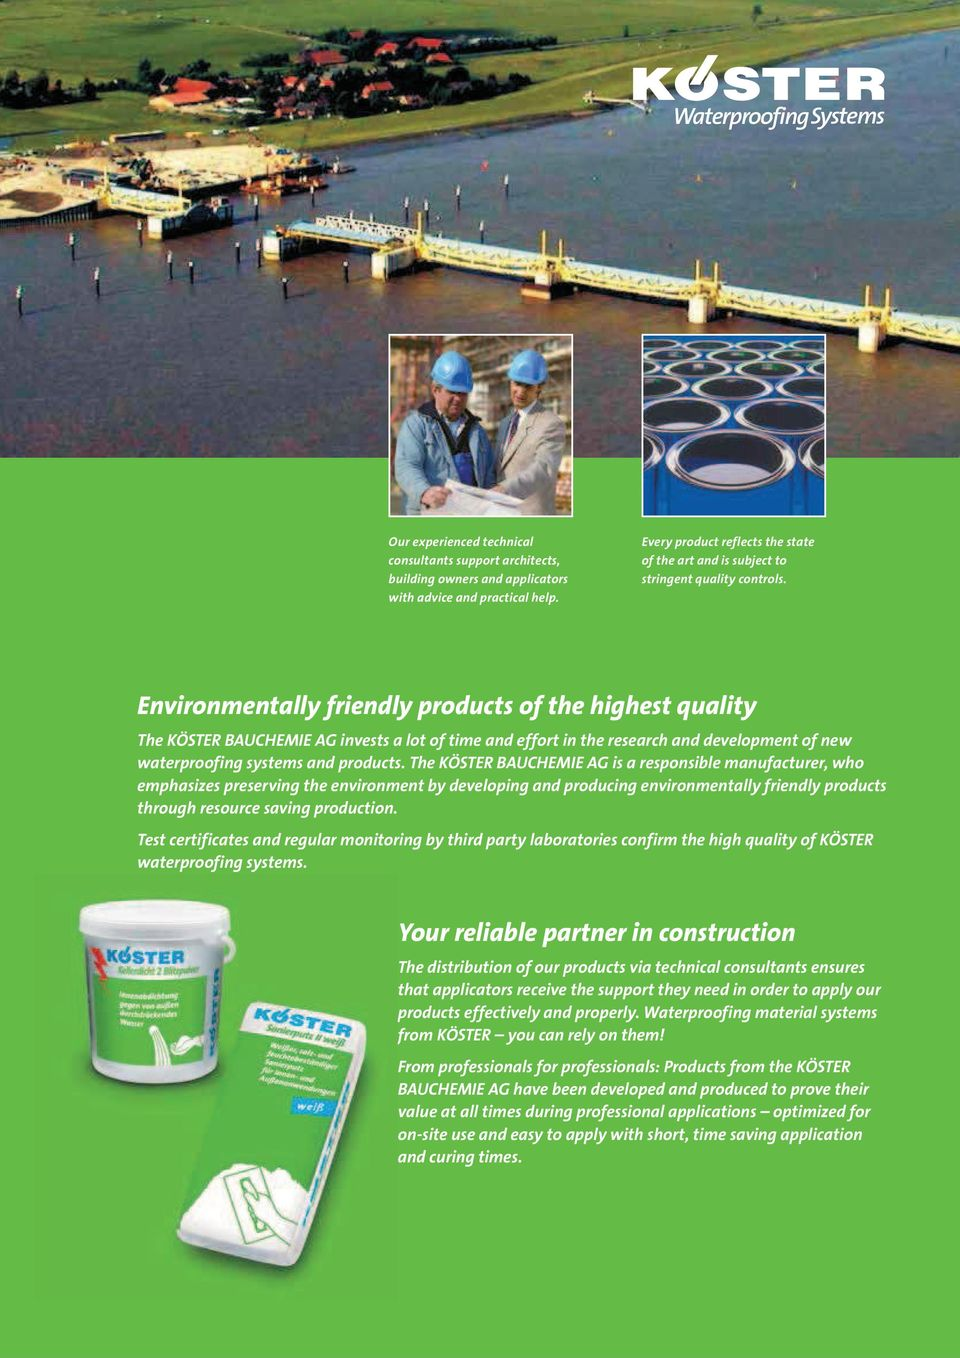 Environmentally friendly products of the highest quality The KÖSTER BAUCHEMIE AG invests a lot of time and effort in the research and development of new waterproofing systems and products.